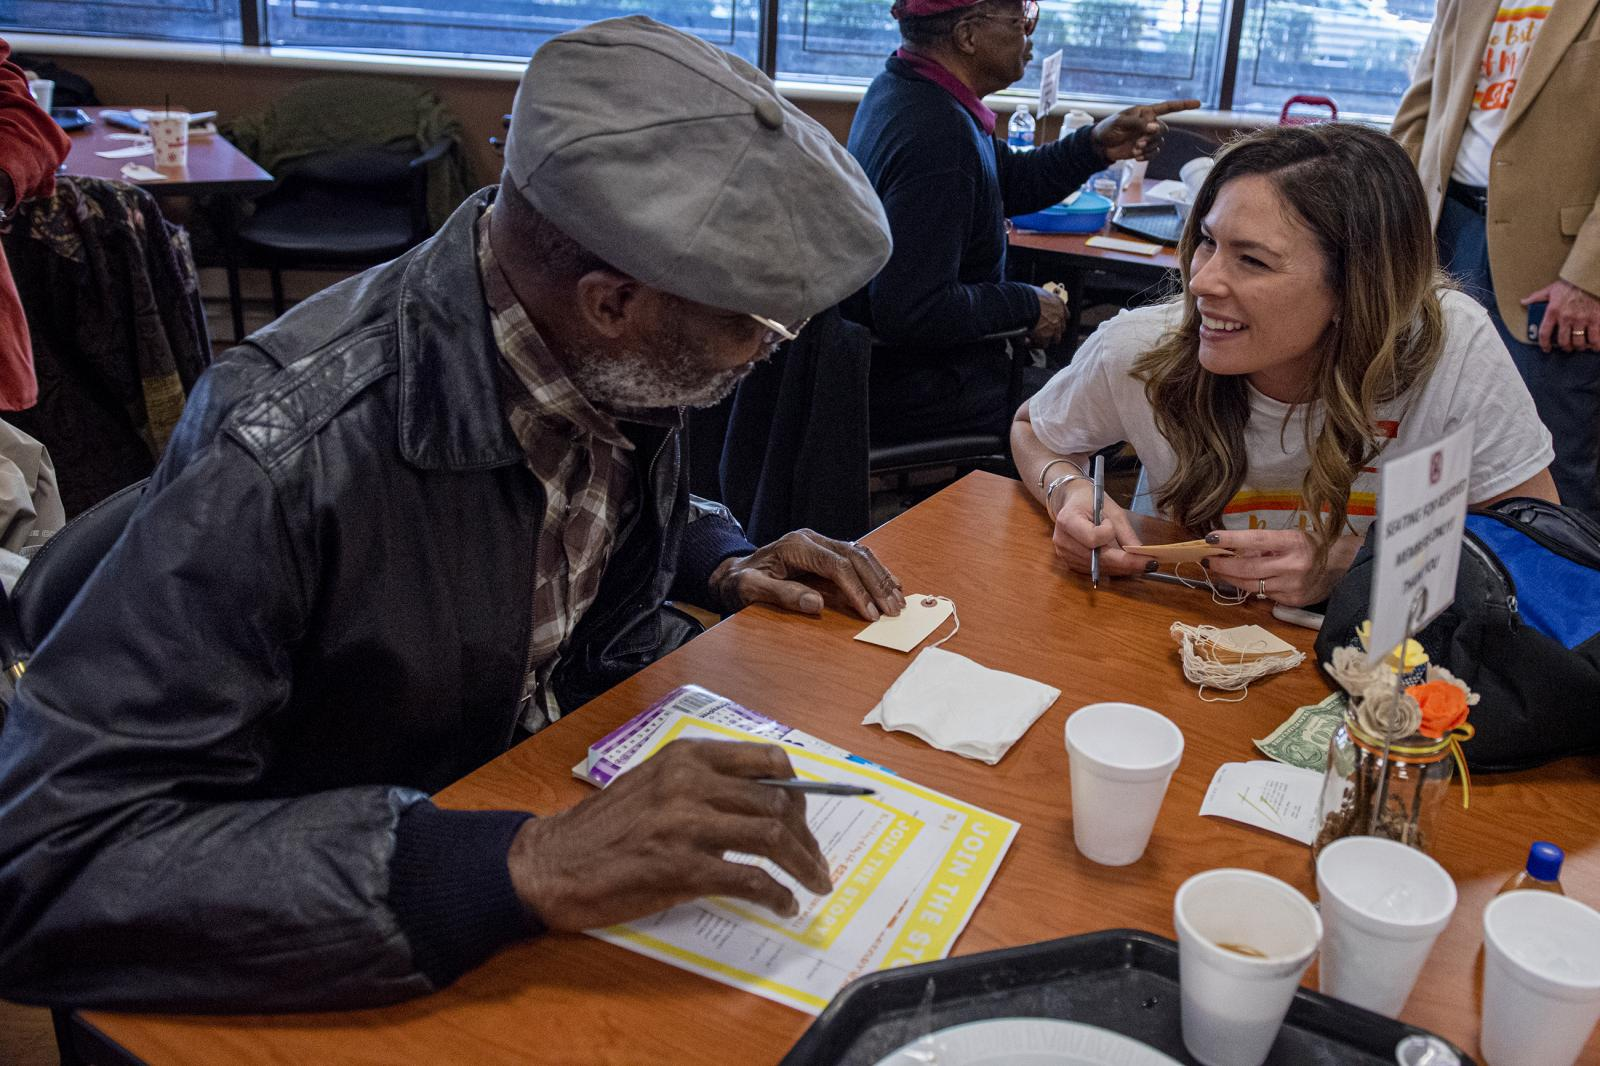 Keli Fazio, a professor from the College of New Jersey, talks with Jonathan White, 92, at the 10th anniversary of Best Day of My Life So Far to help tell seniors' stories, on Friday, Nov. 8, 2019, at Philadelphia Senior Center, in Philadelphia, Pa.